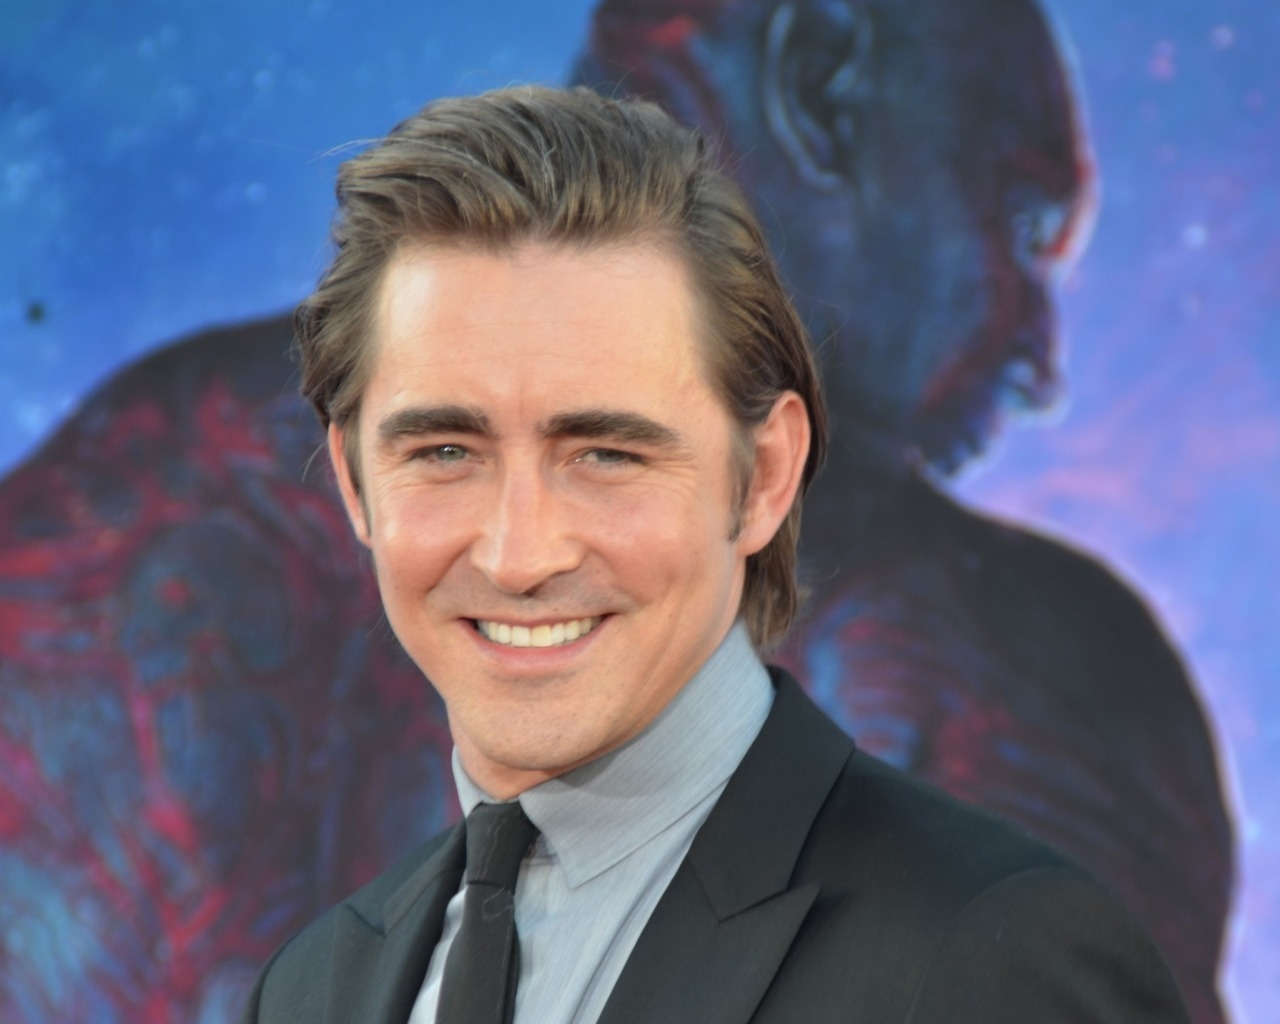 Lee Pace Actor for 1280 x 1024 resolution